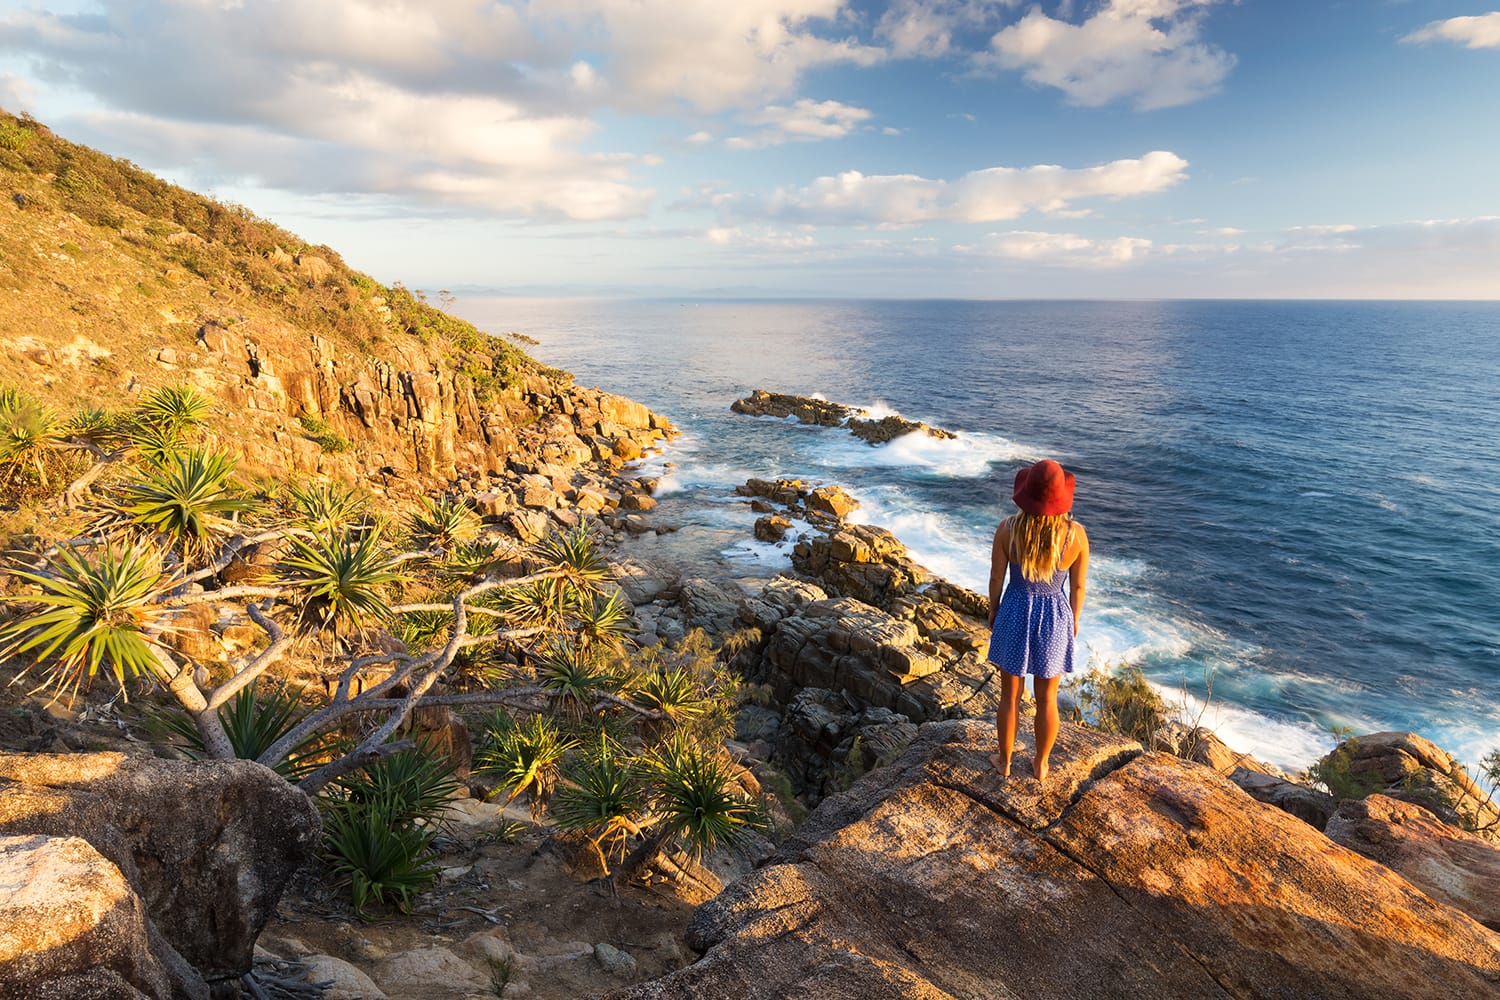 A young woman admires a coastal view at sunrise near Coffs Harbour, Australia.